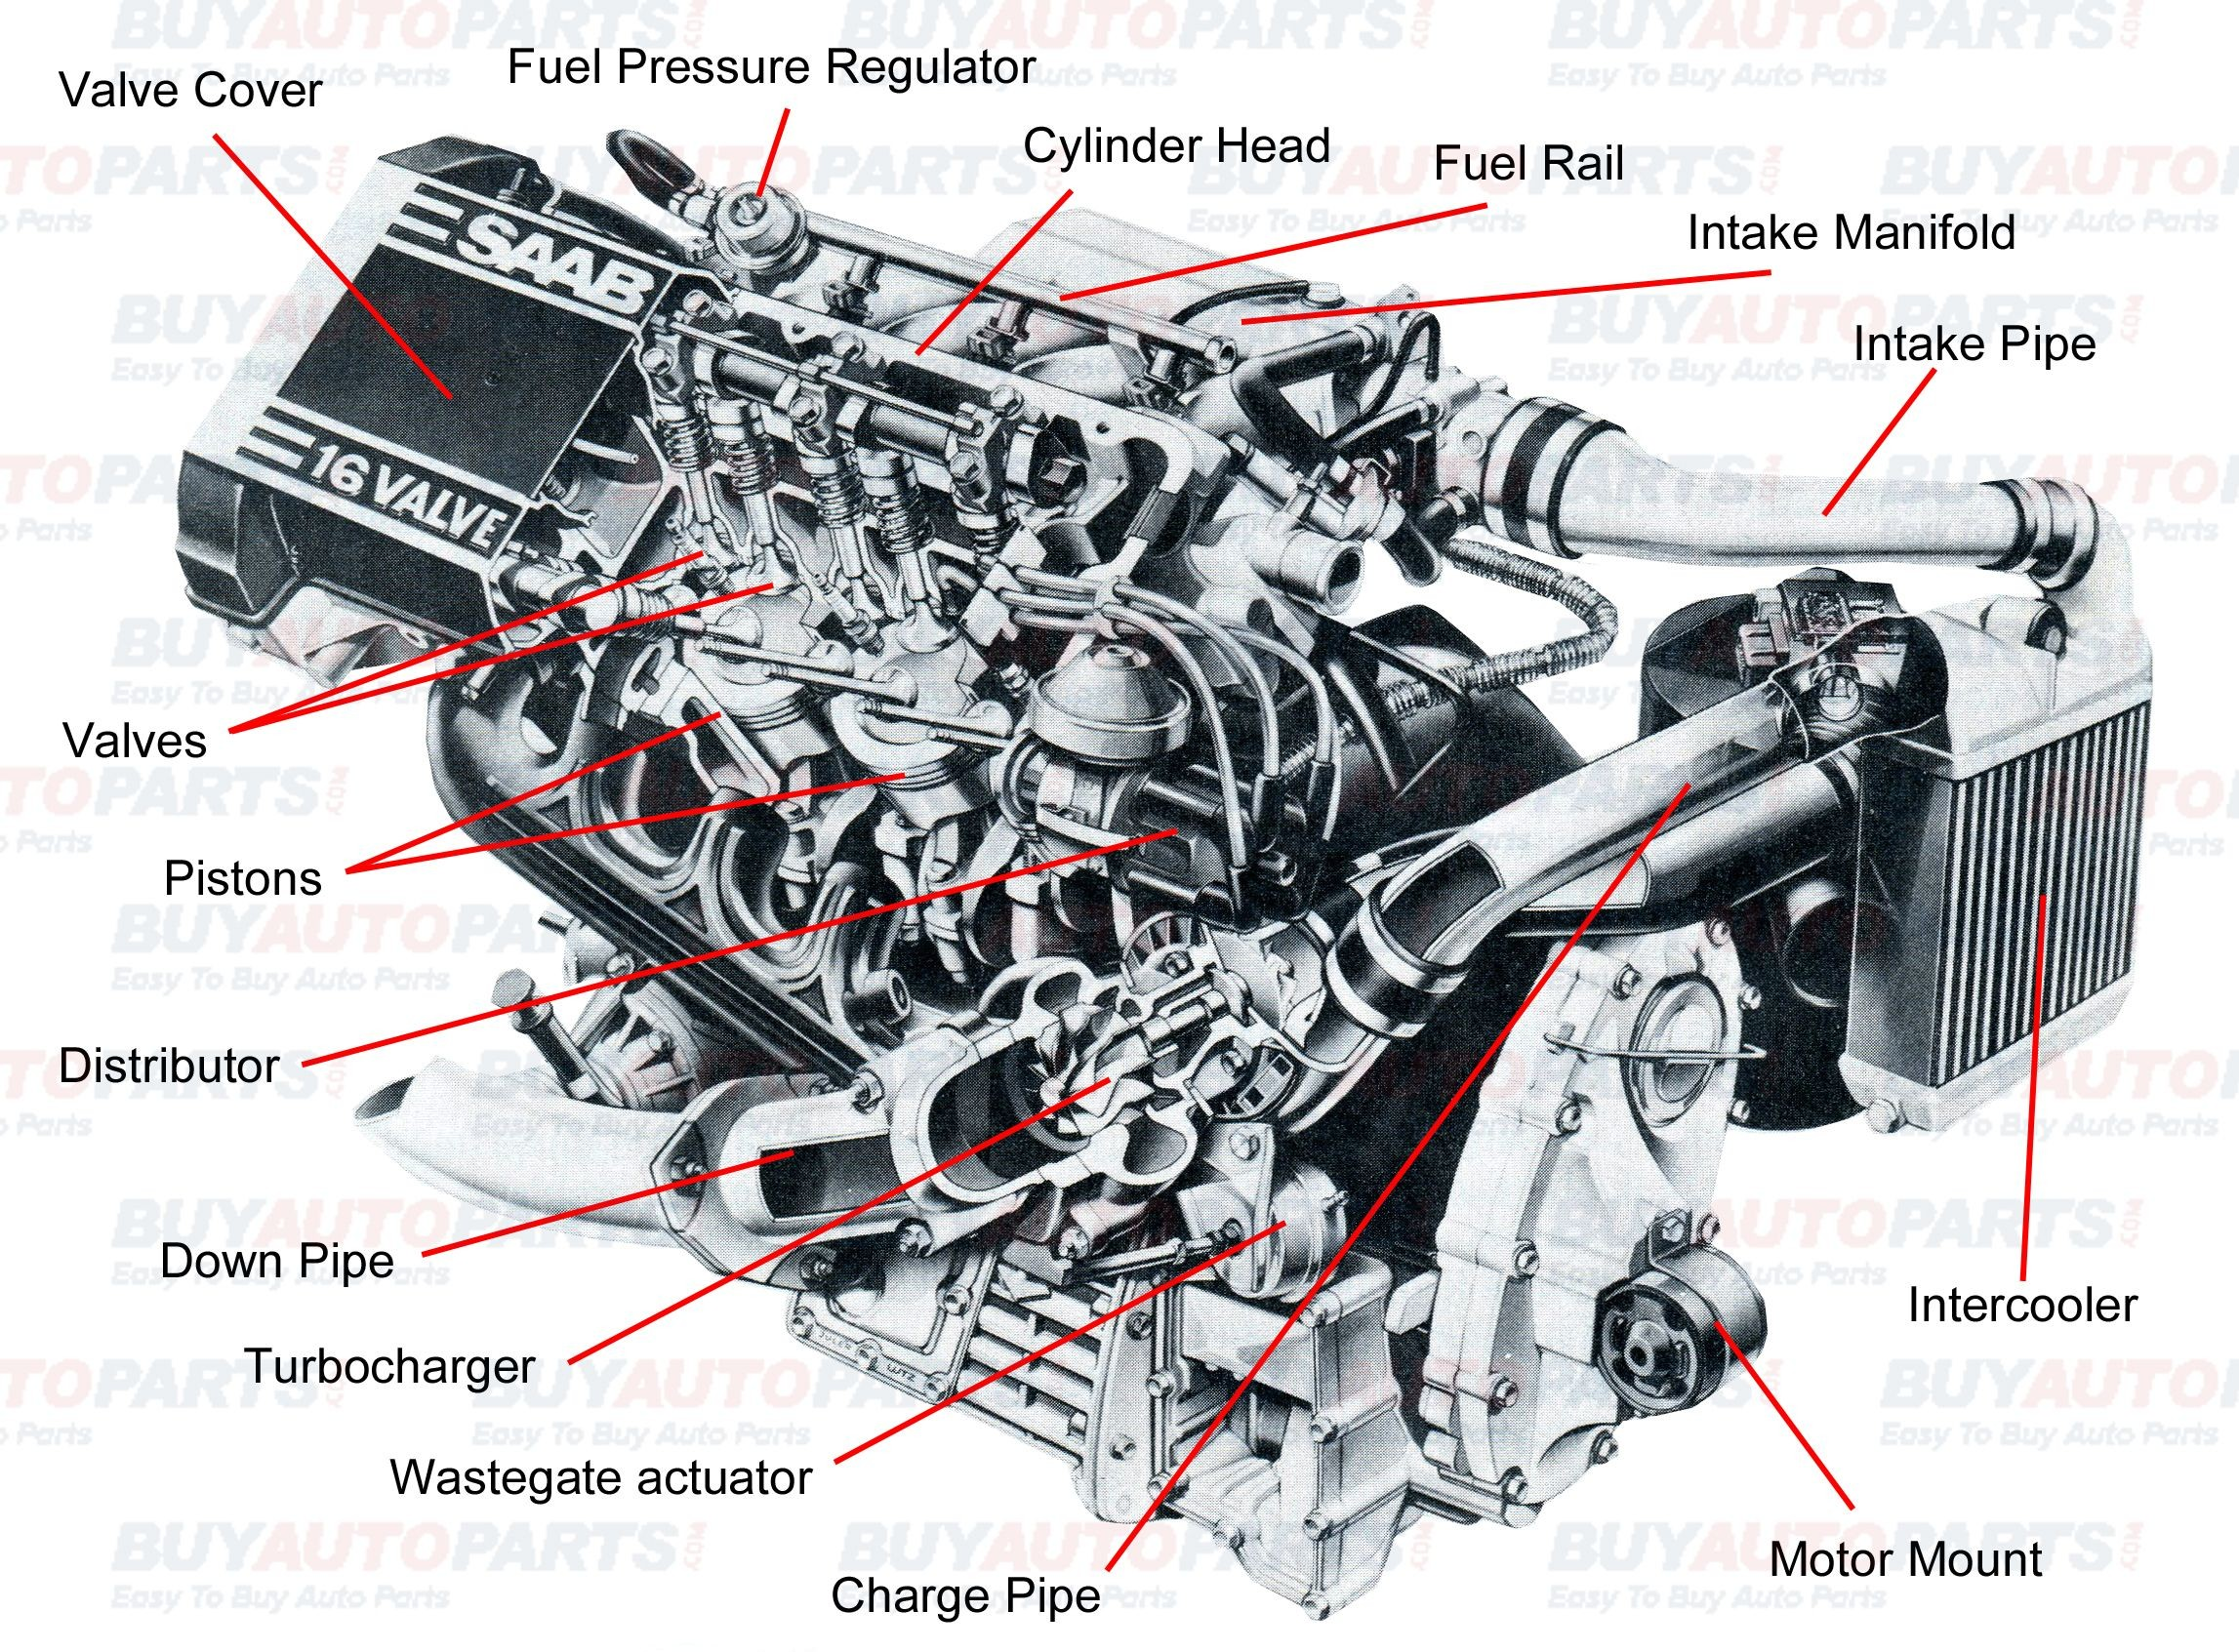 Car Engine Diagram Animation Pin by Jimmiejanet Testellamwfz On What Does An Engine with Turbo Of Car Engine Diagram Animation